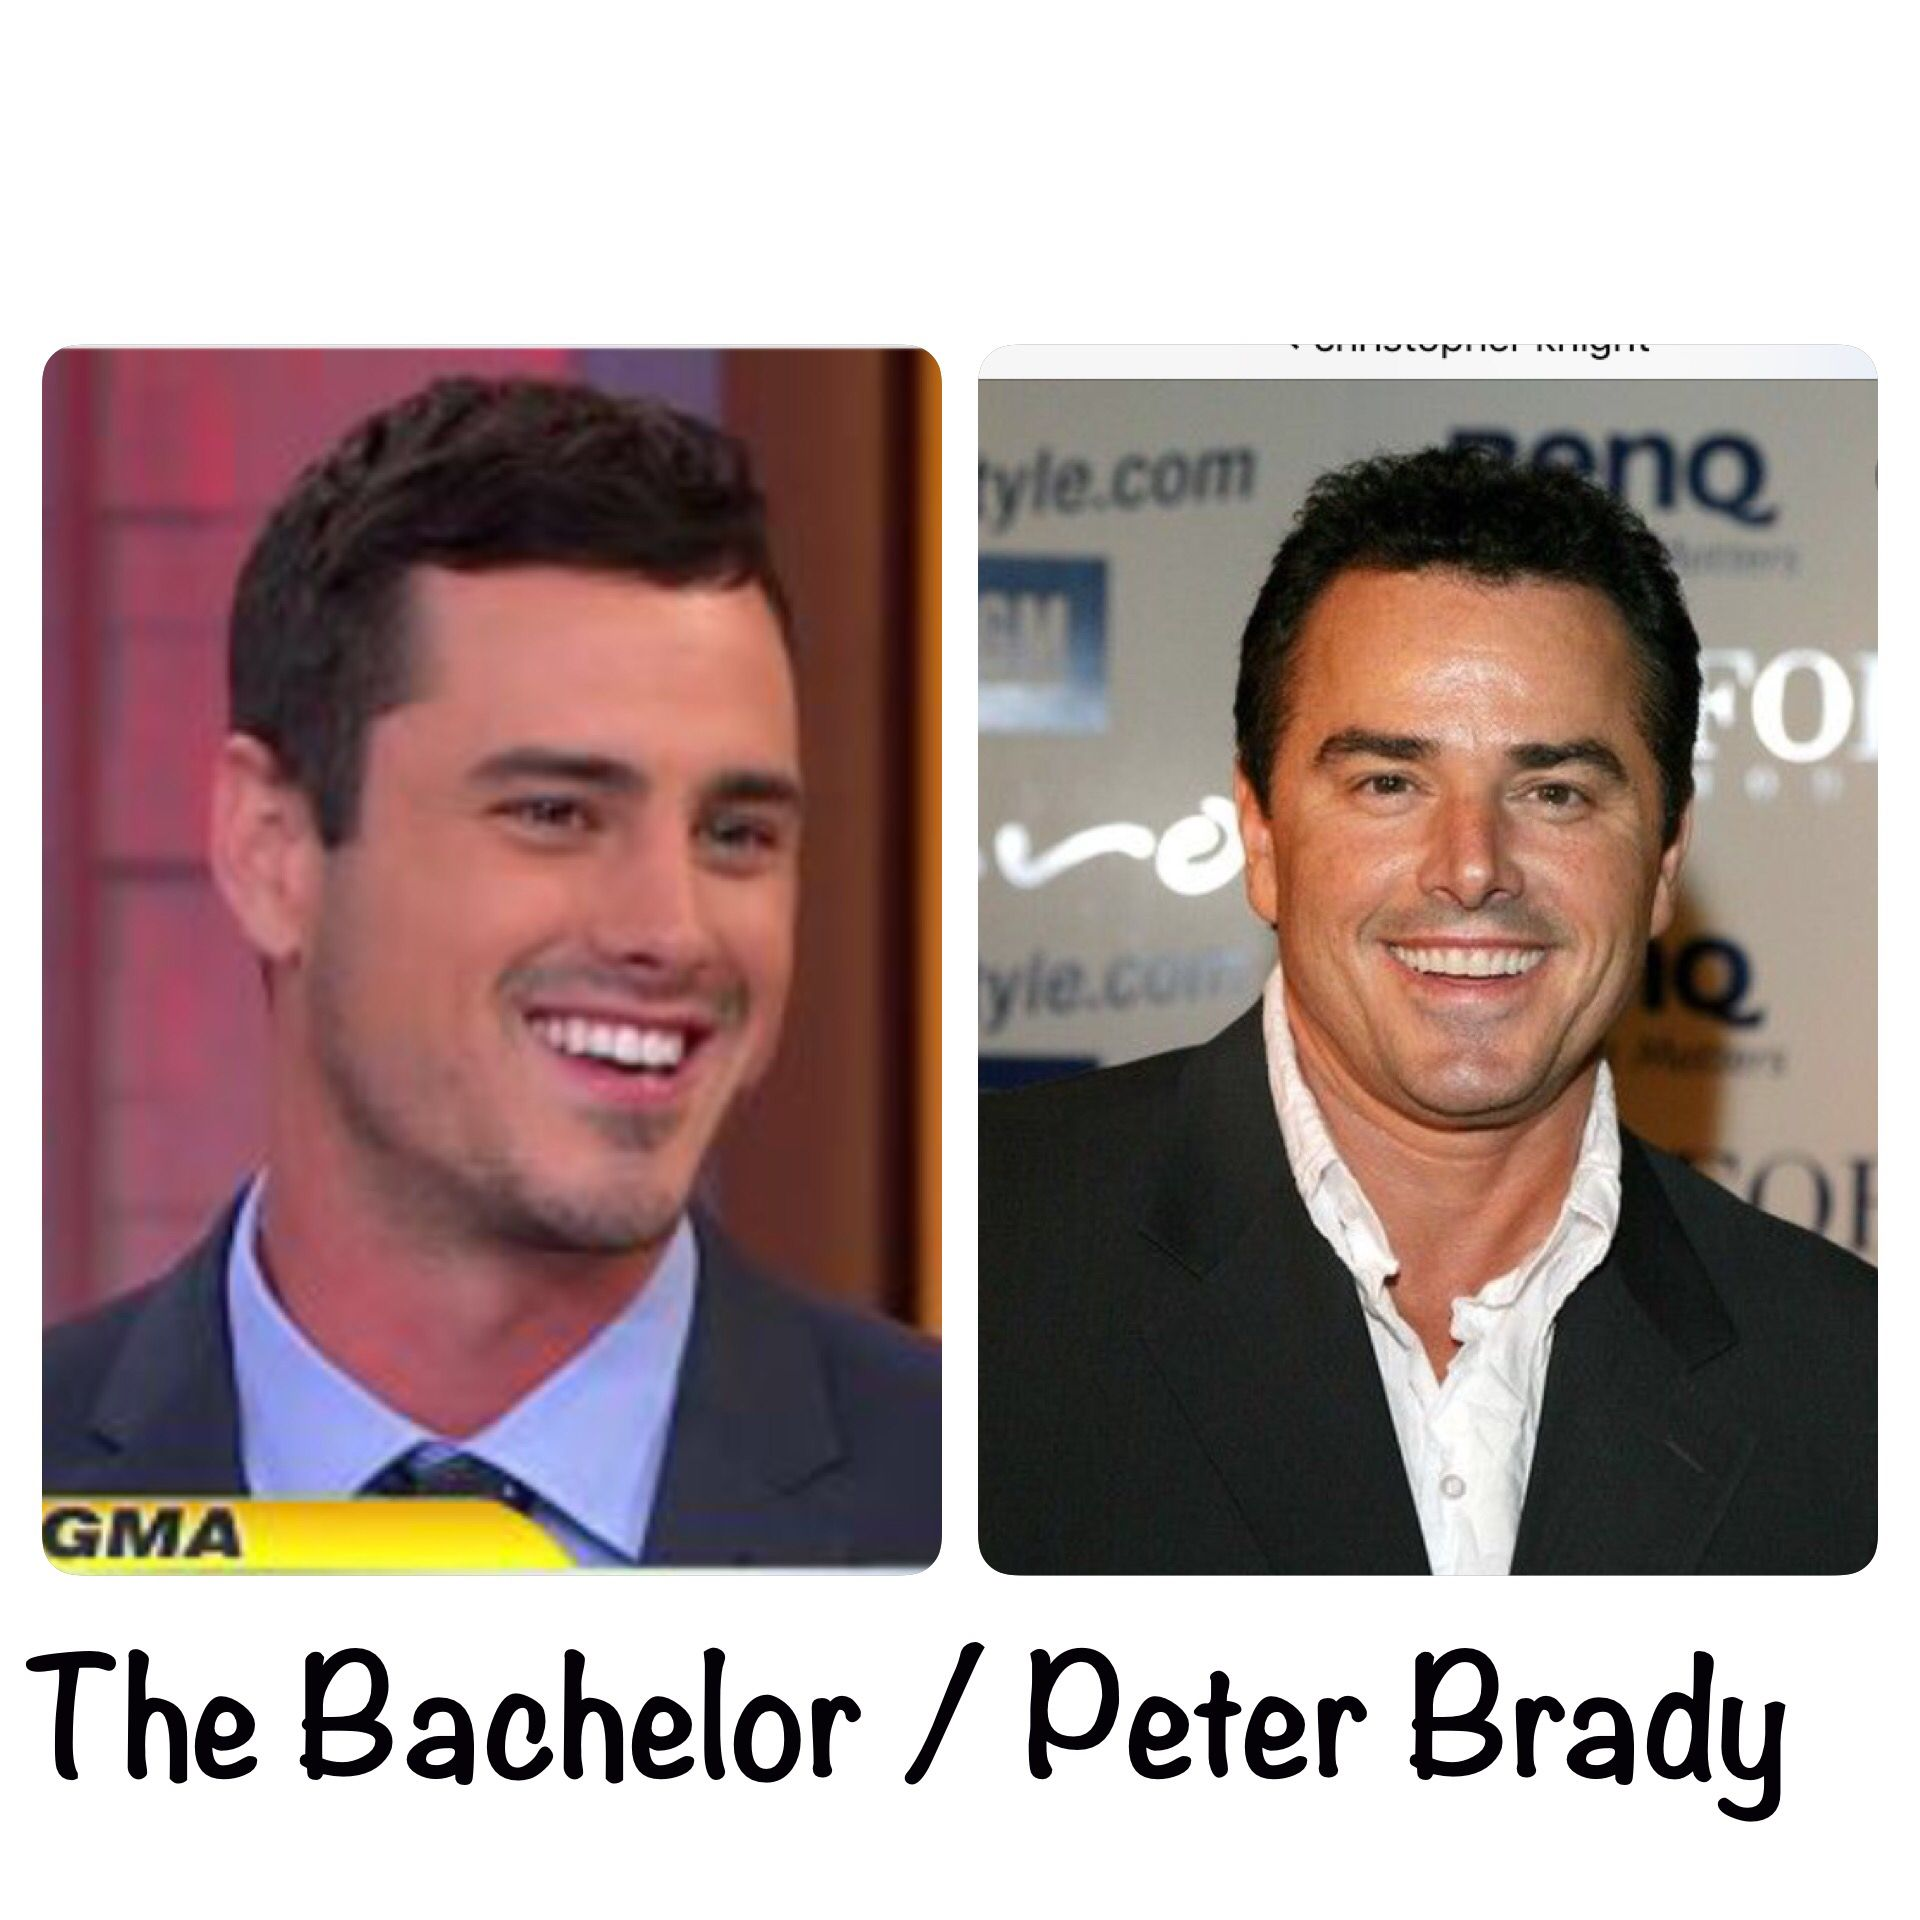 I'm convinced that Peter Brady is the Bachelor's father!